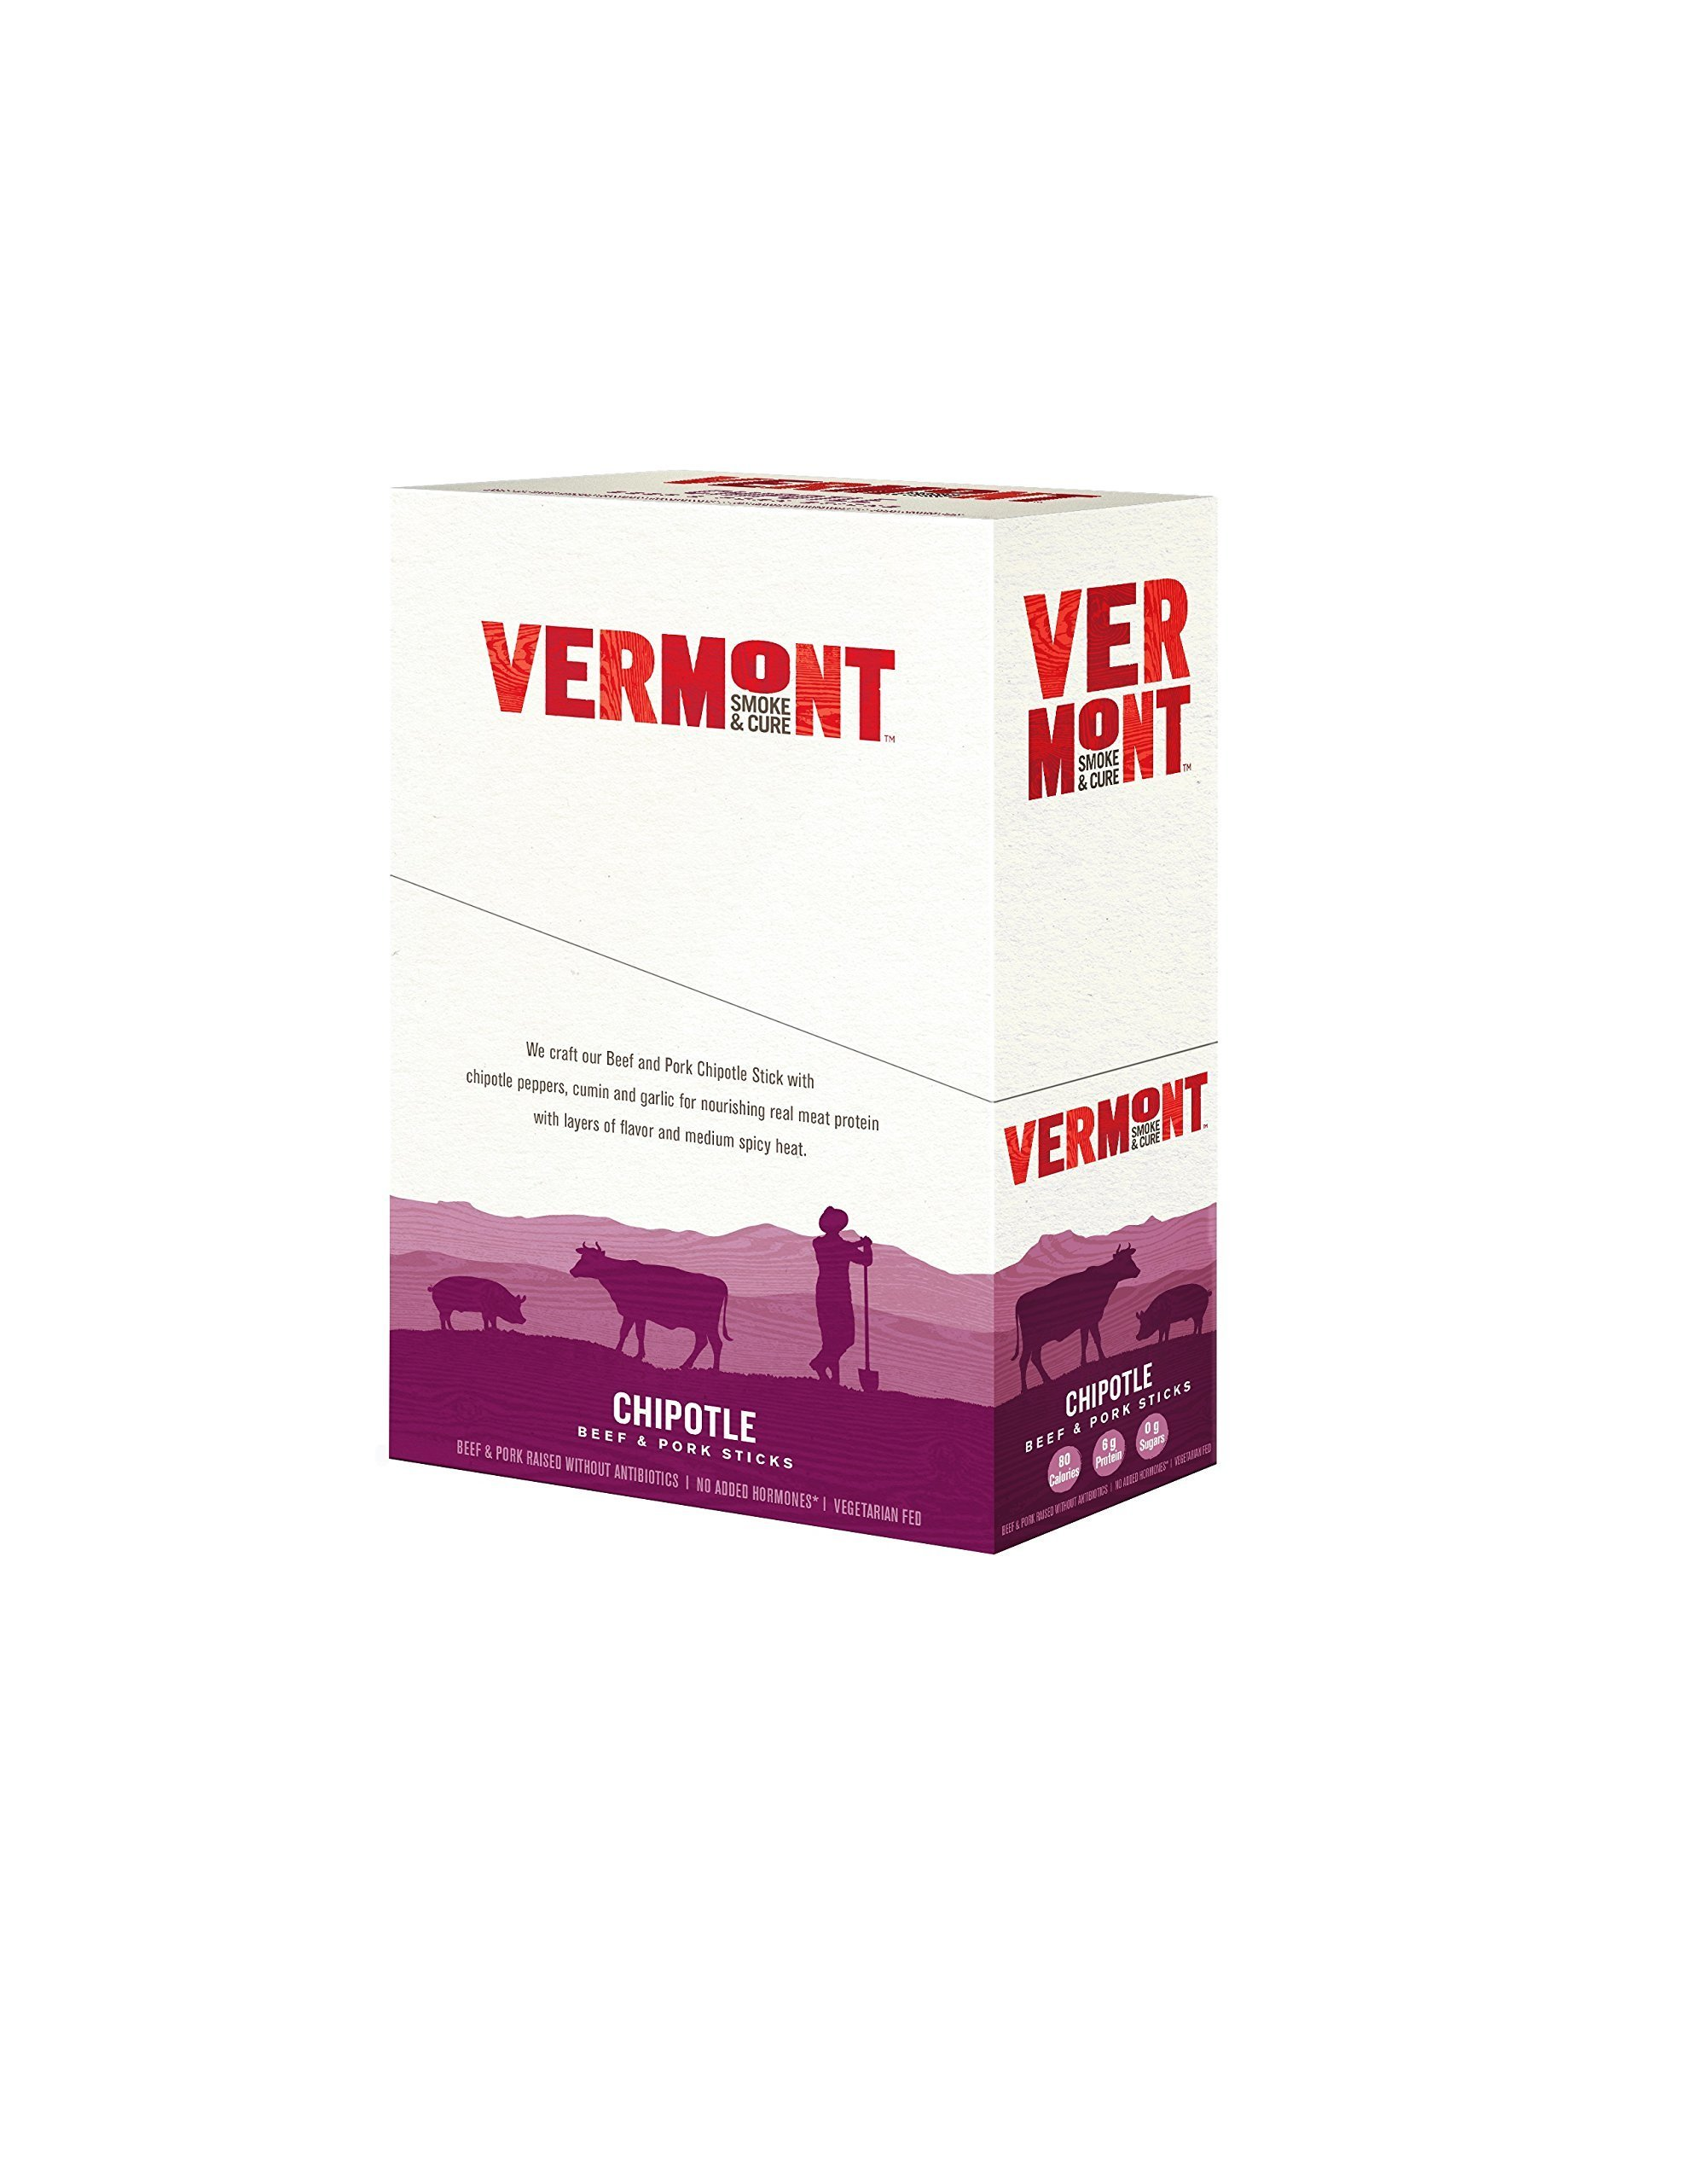 Vermont Smoke & Cure Meat Sticks, Beef & Pork, Antibiotic Free, Gluten Free, Chipotle, 1oz Stick, 24 Count by Vermont Smoke and Cure (Image #7)